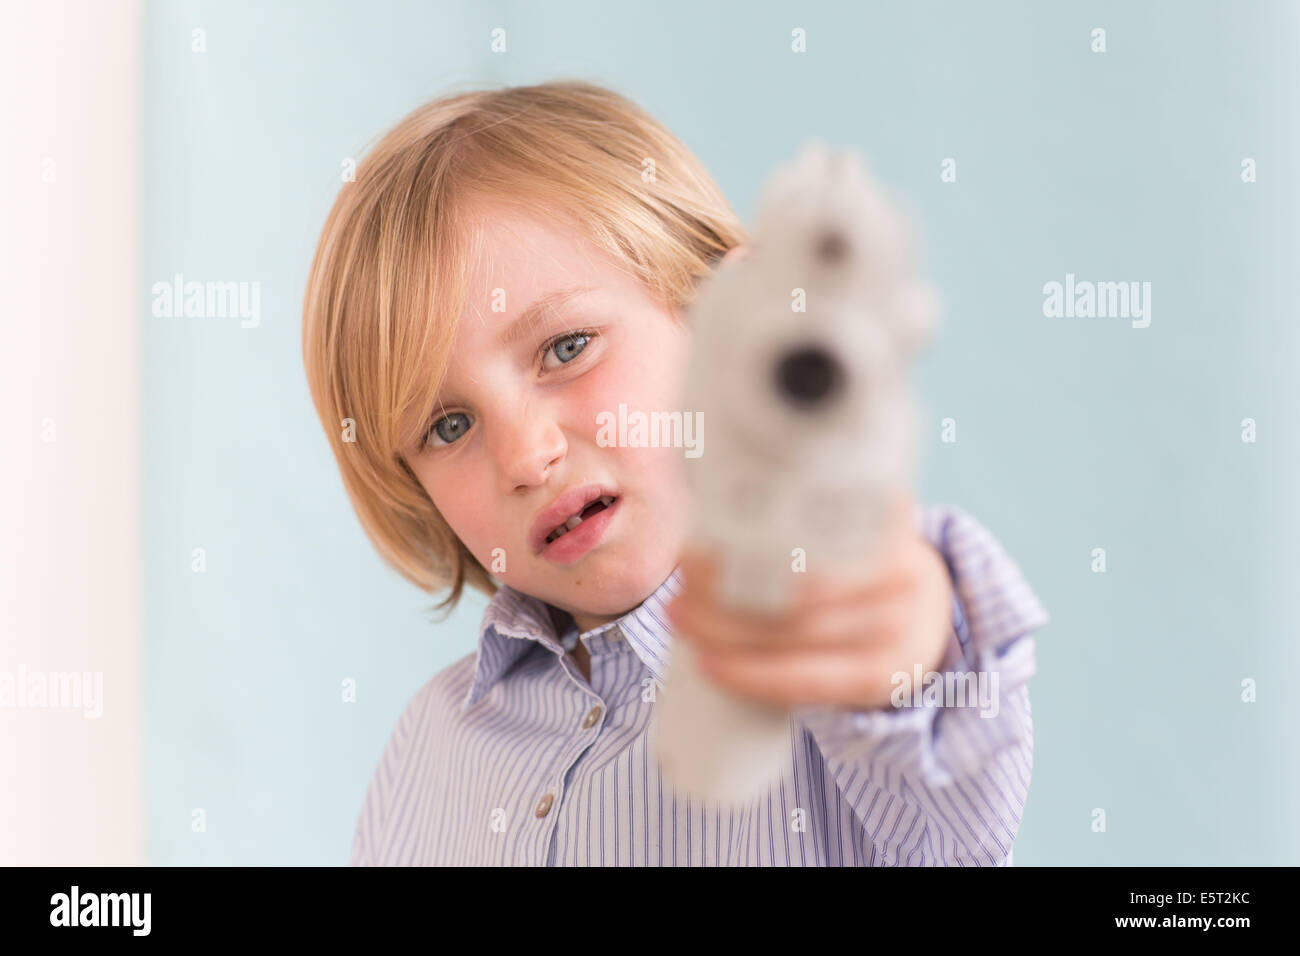 7 year old boy playing with toy. - Stock Image